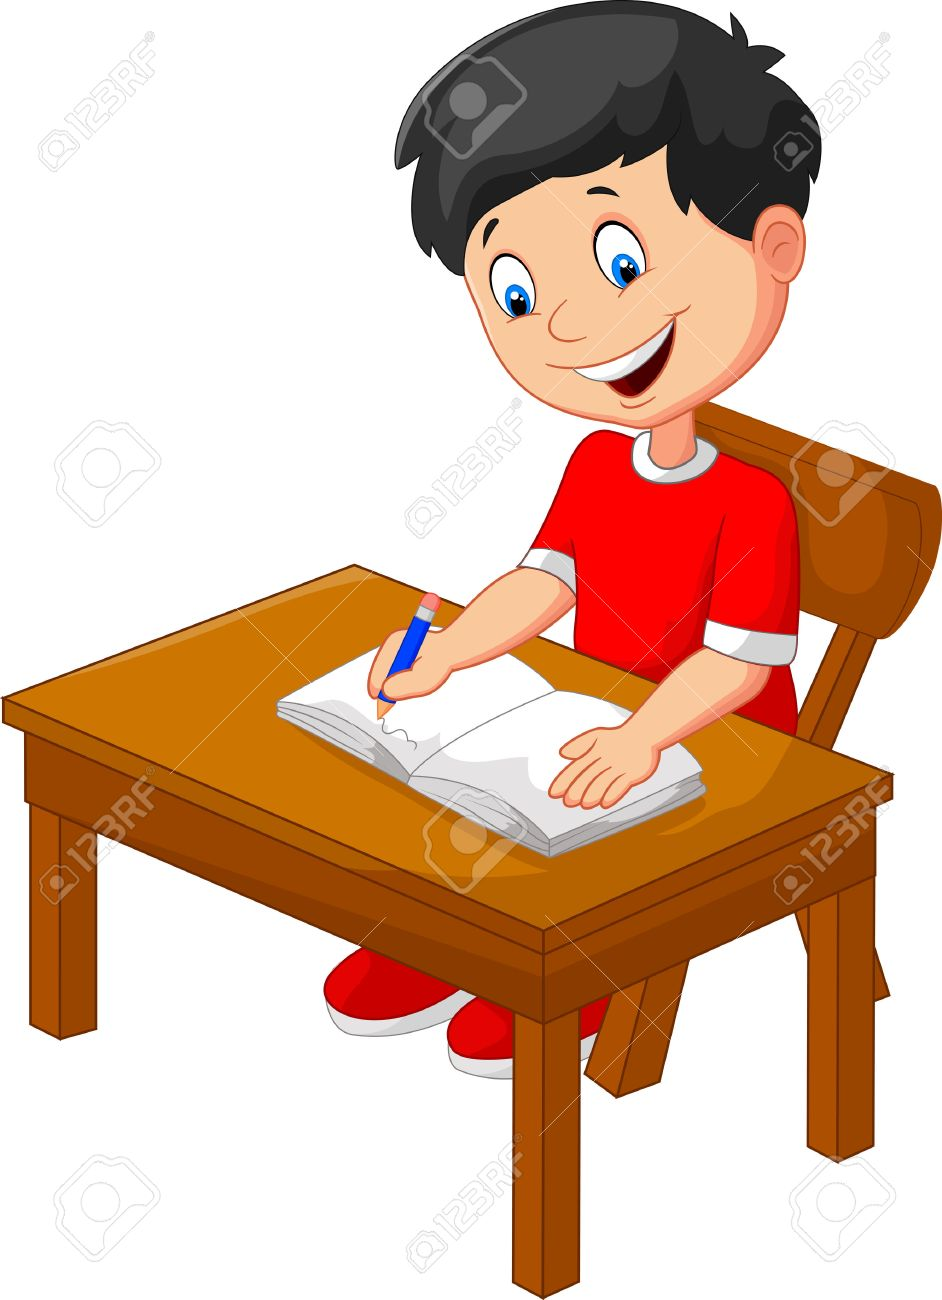 cartoon little boy writing royalty free cliparts, vectors, and stock